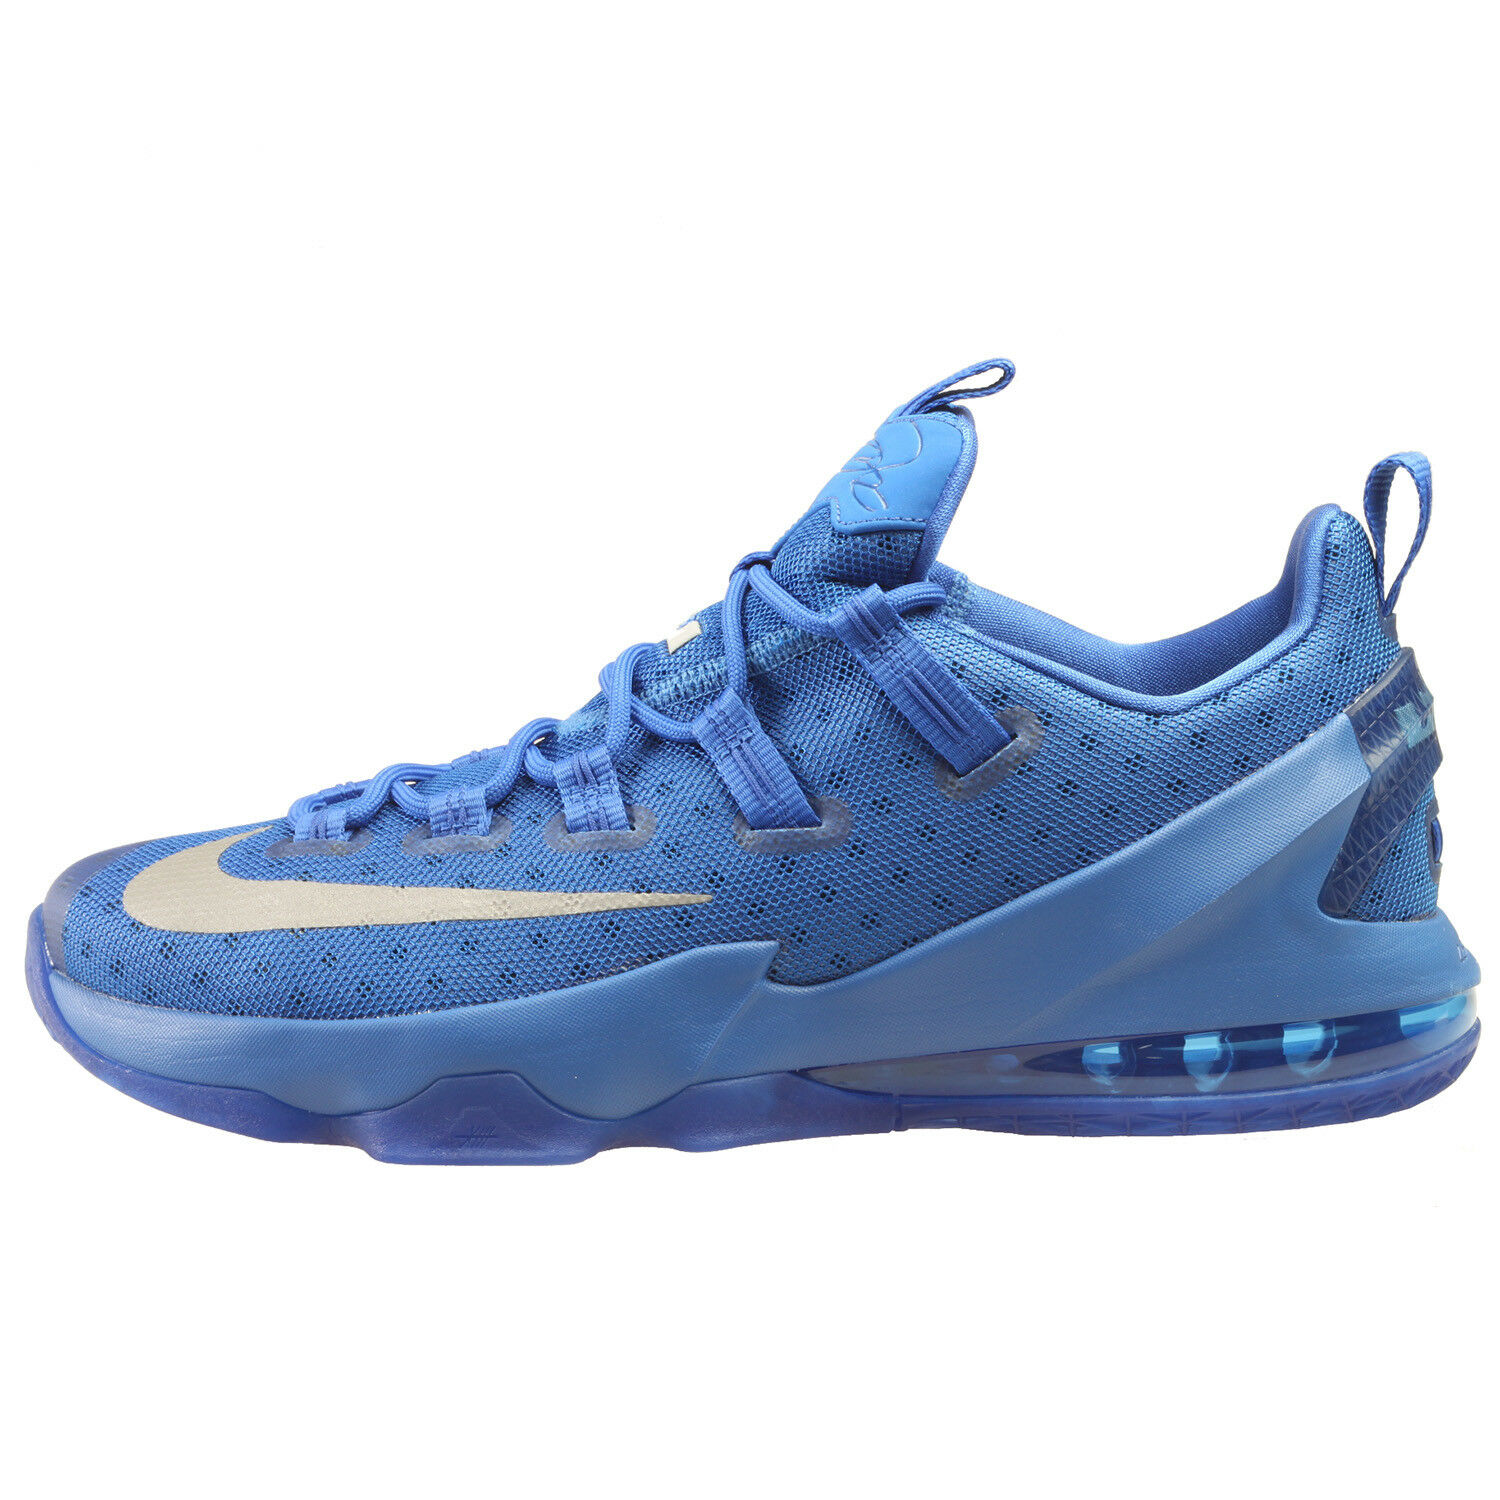 Nike Lebron XIII 13 Low 831925-400 Game Royal Blue Basketball Shoes Size 12